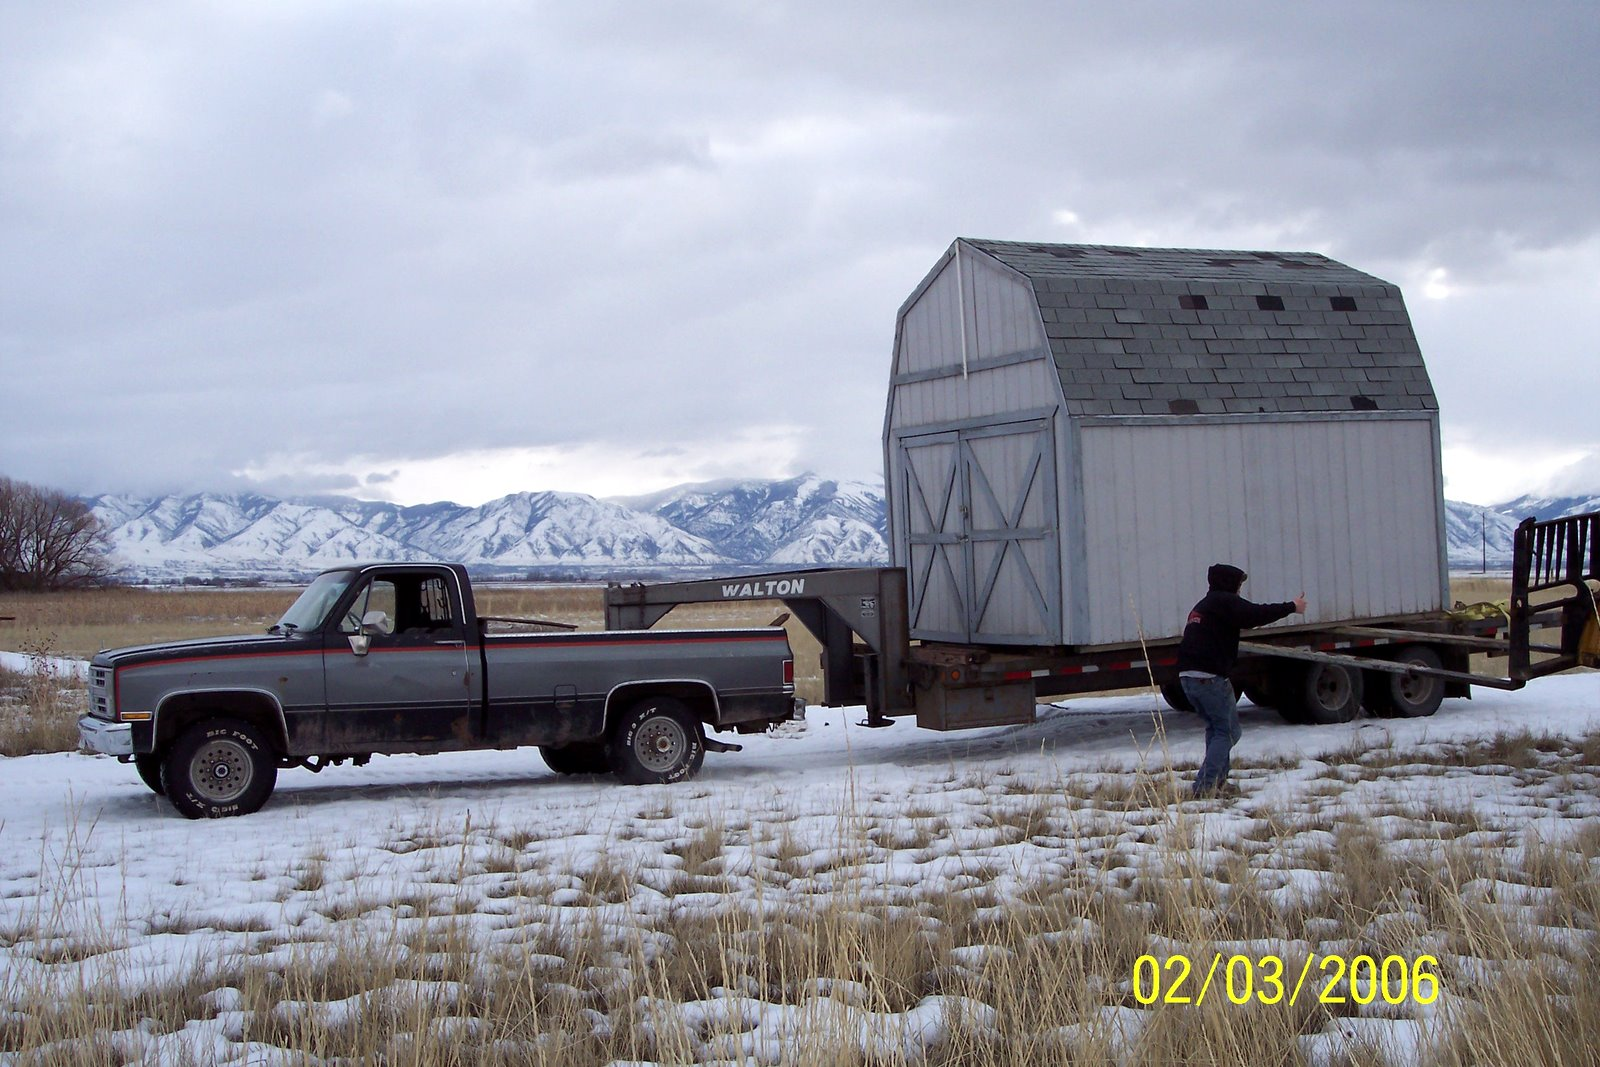 """UNLOADING SHED AT THE NEW FLYING SITE AFTER SLOW """"WATCH FOR LOW OVERHEAD WIRES"""" 5 MILE TRIP."""